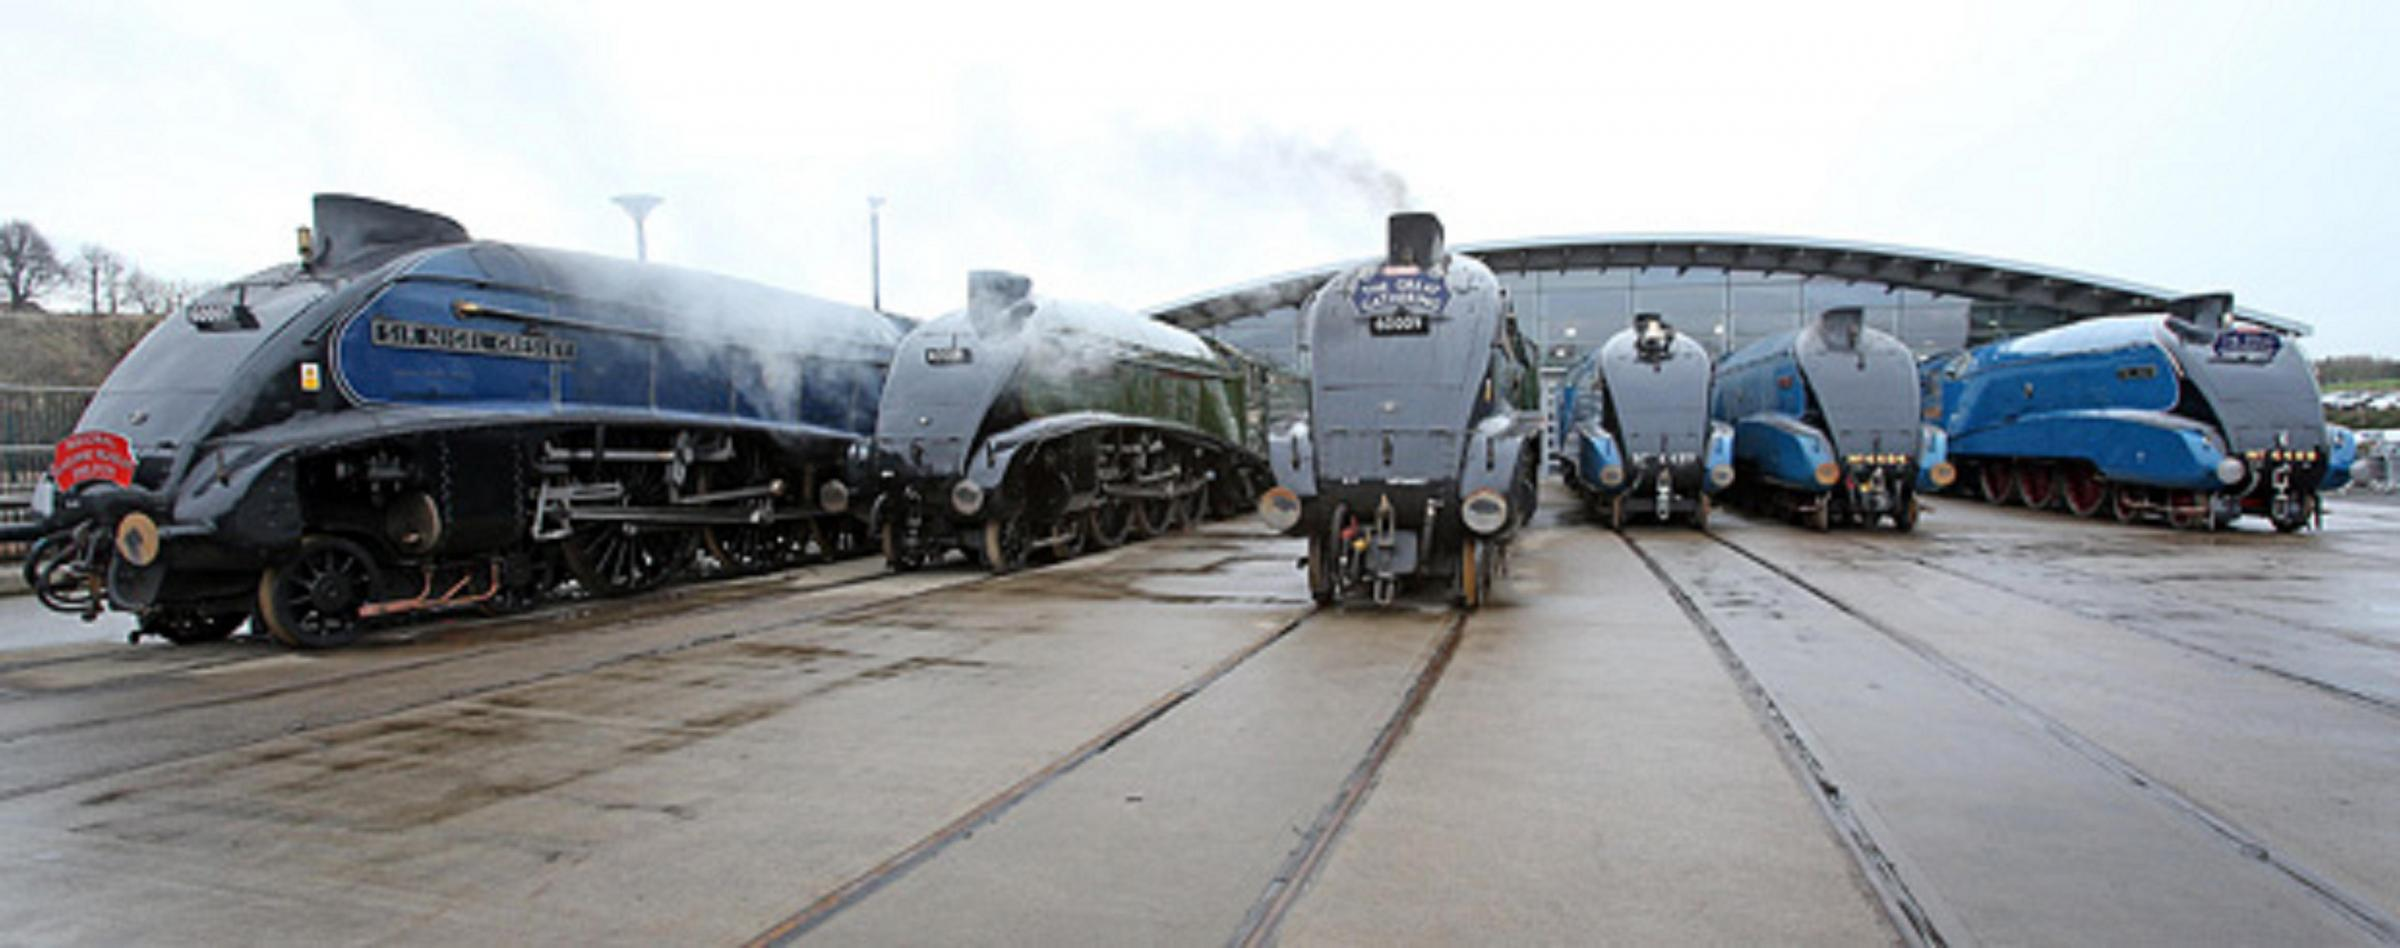 Record numbers flock to Locomotion to see Mallard and her sisters together for final time